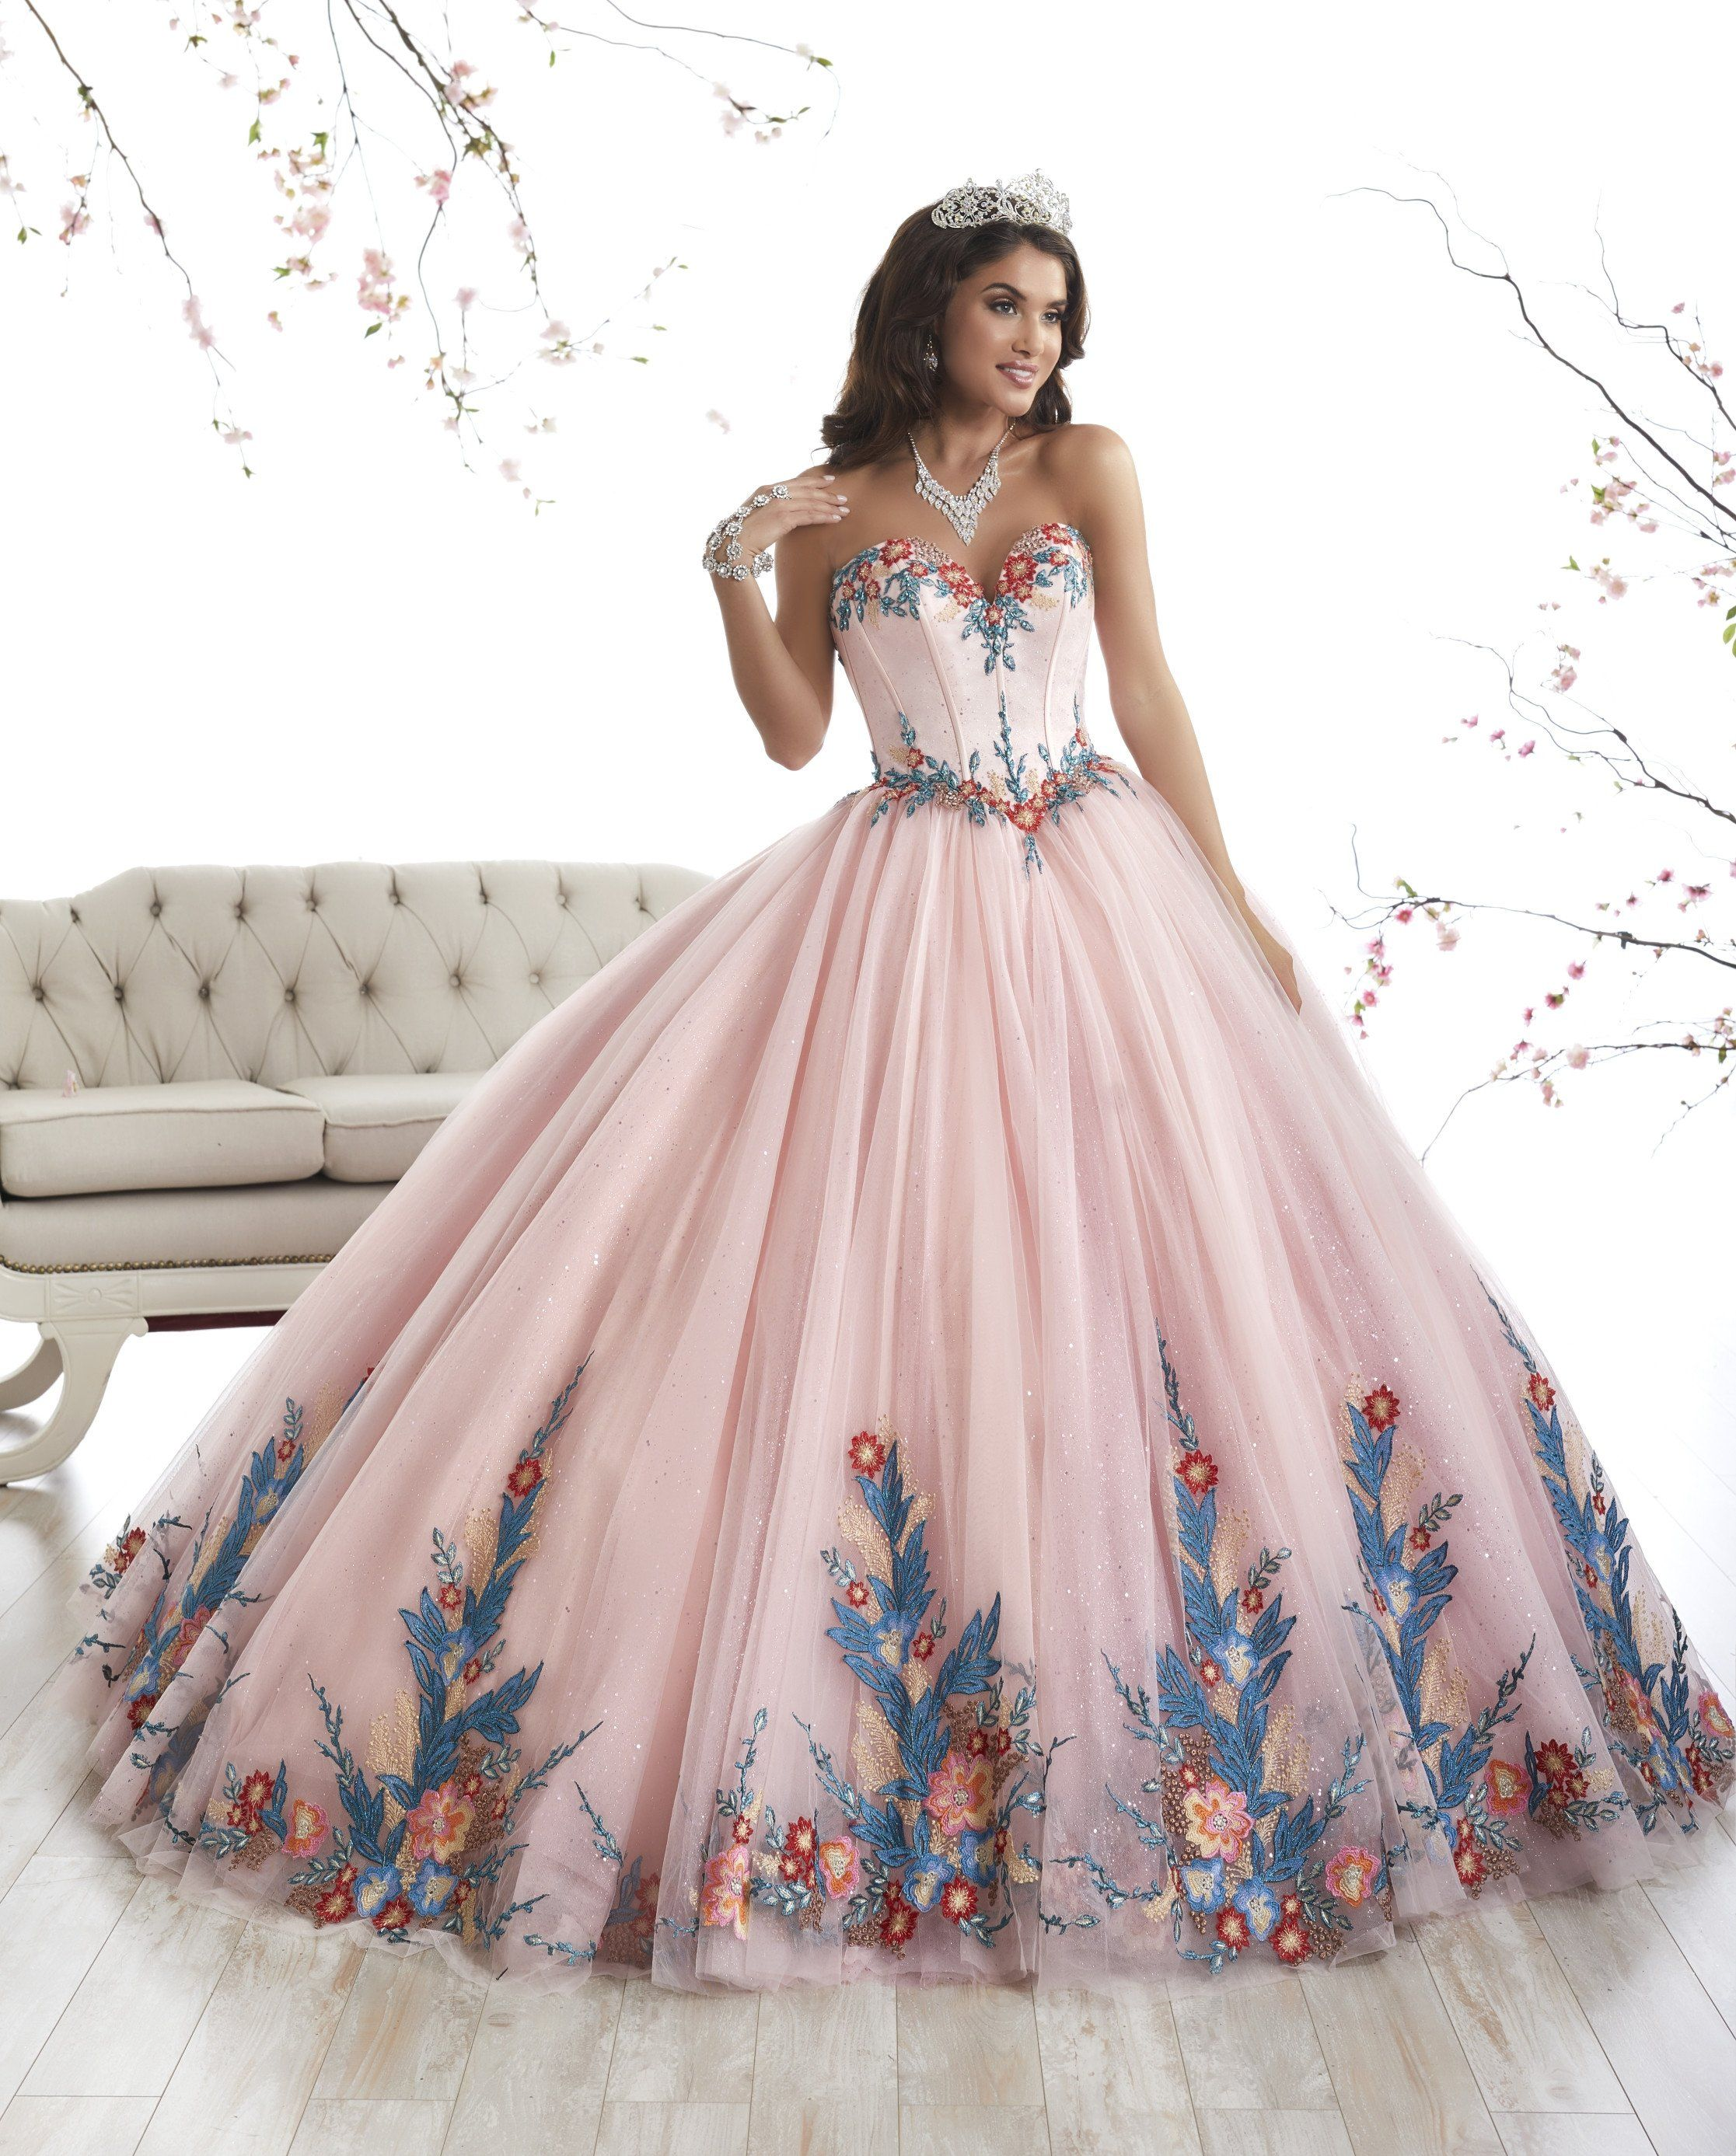 fa14f41bdee Floral Appliqued A-line Quinceanera Dress by House of Wu 26869 in ...